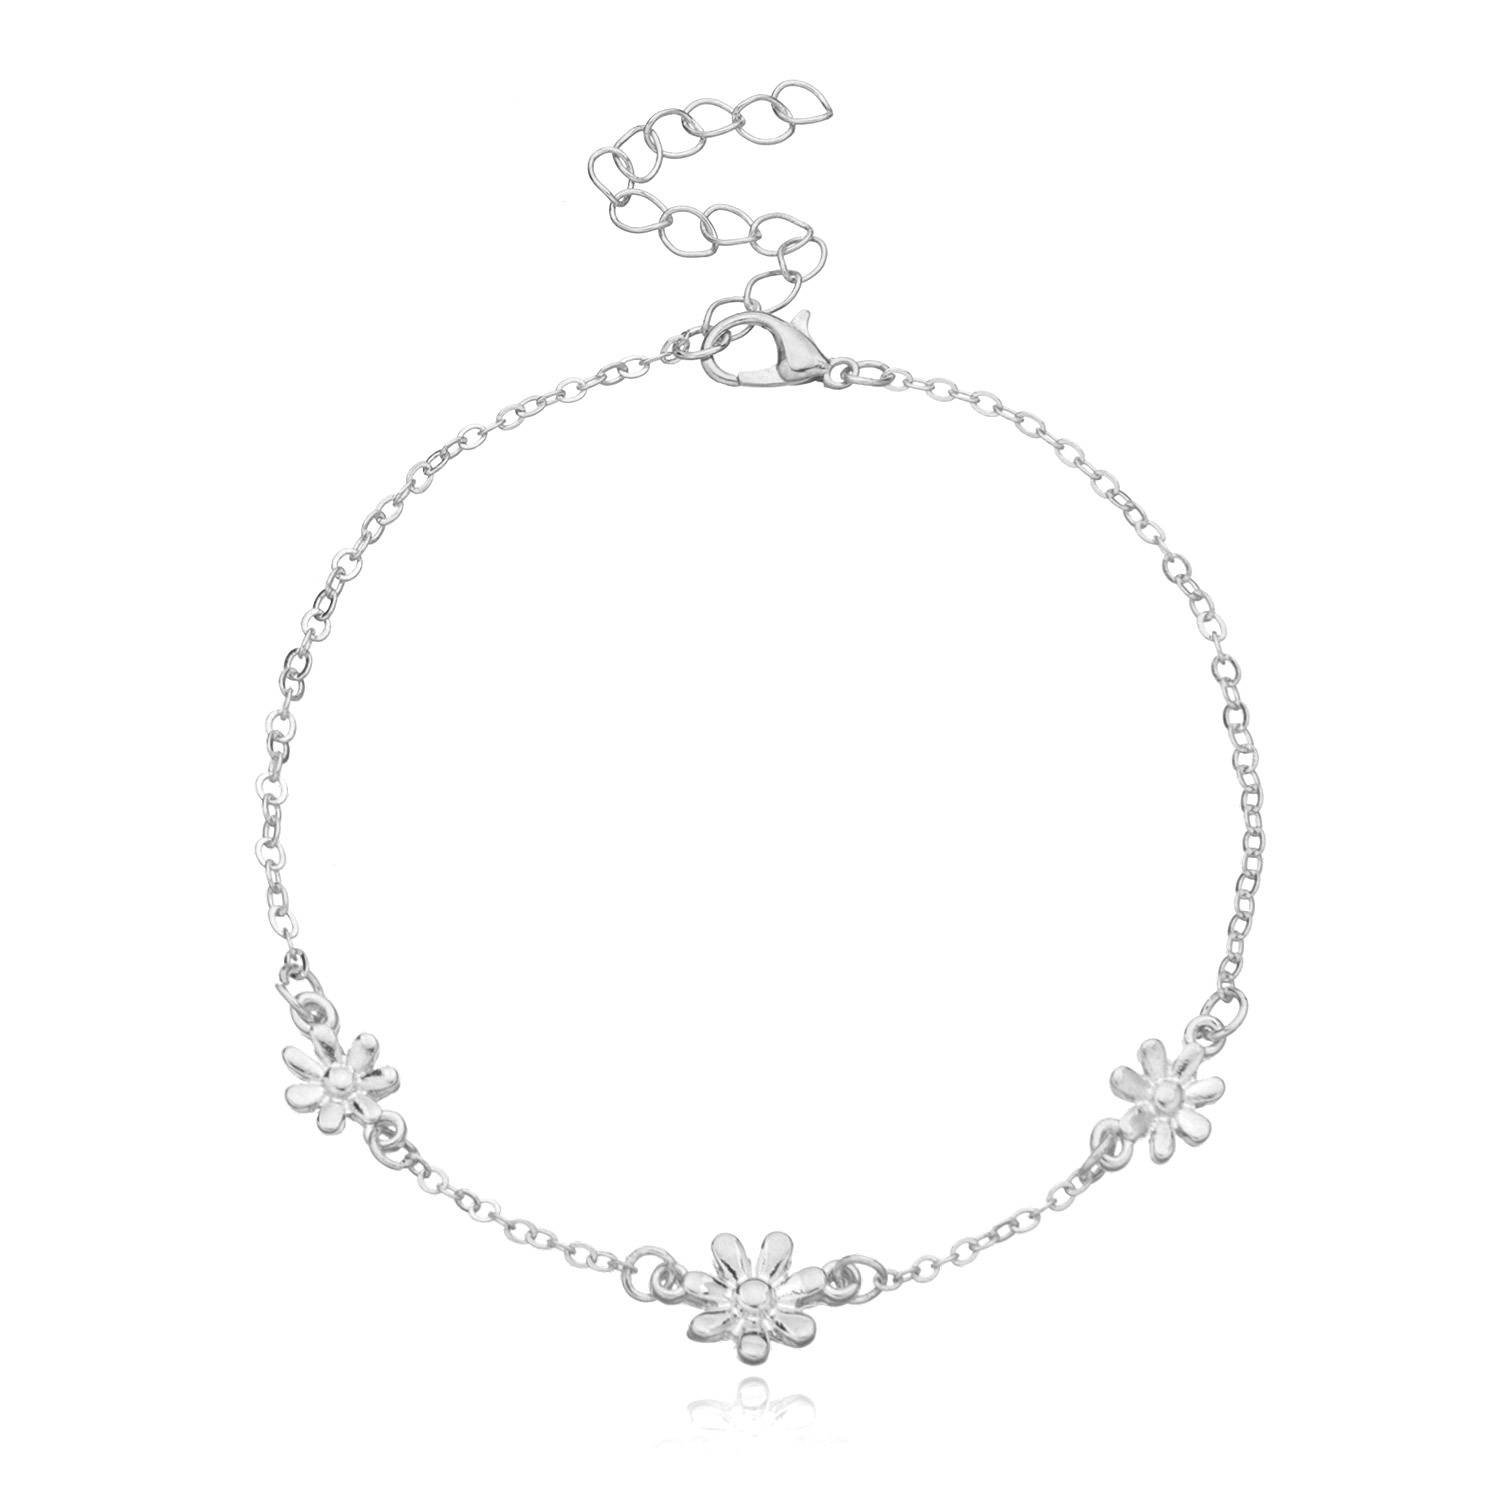 Aesthetic Little Flower Charm Anklet for Beach Weekend